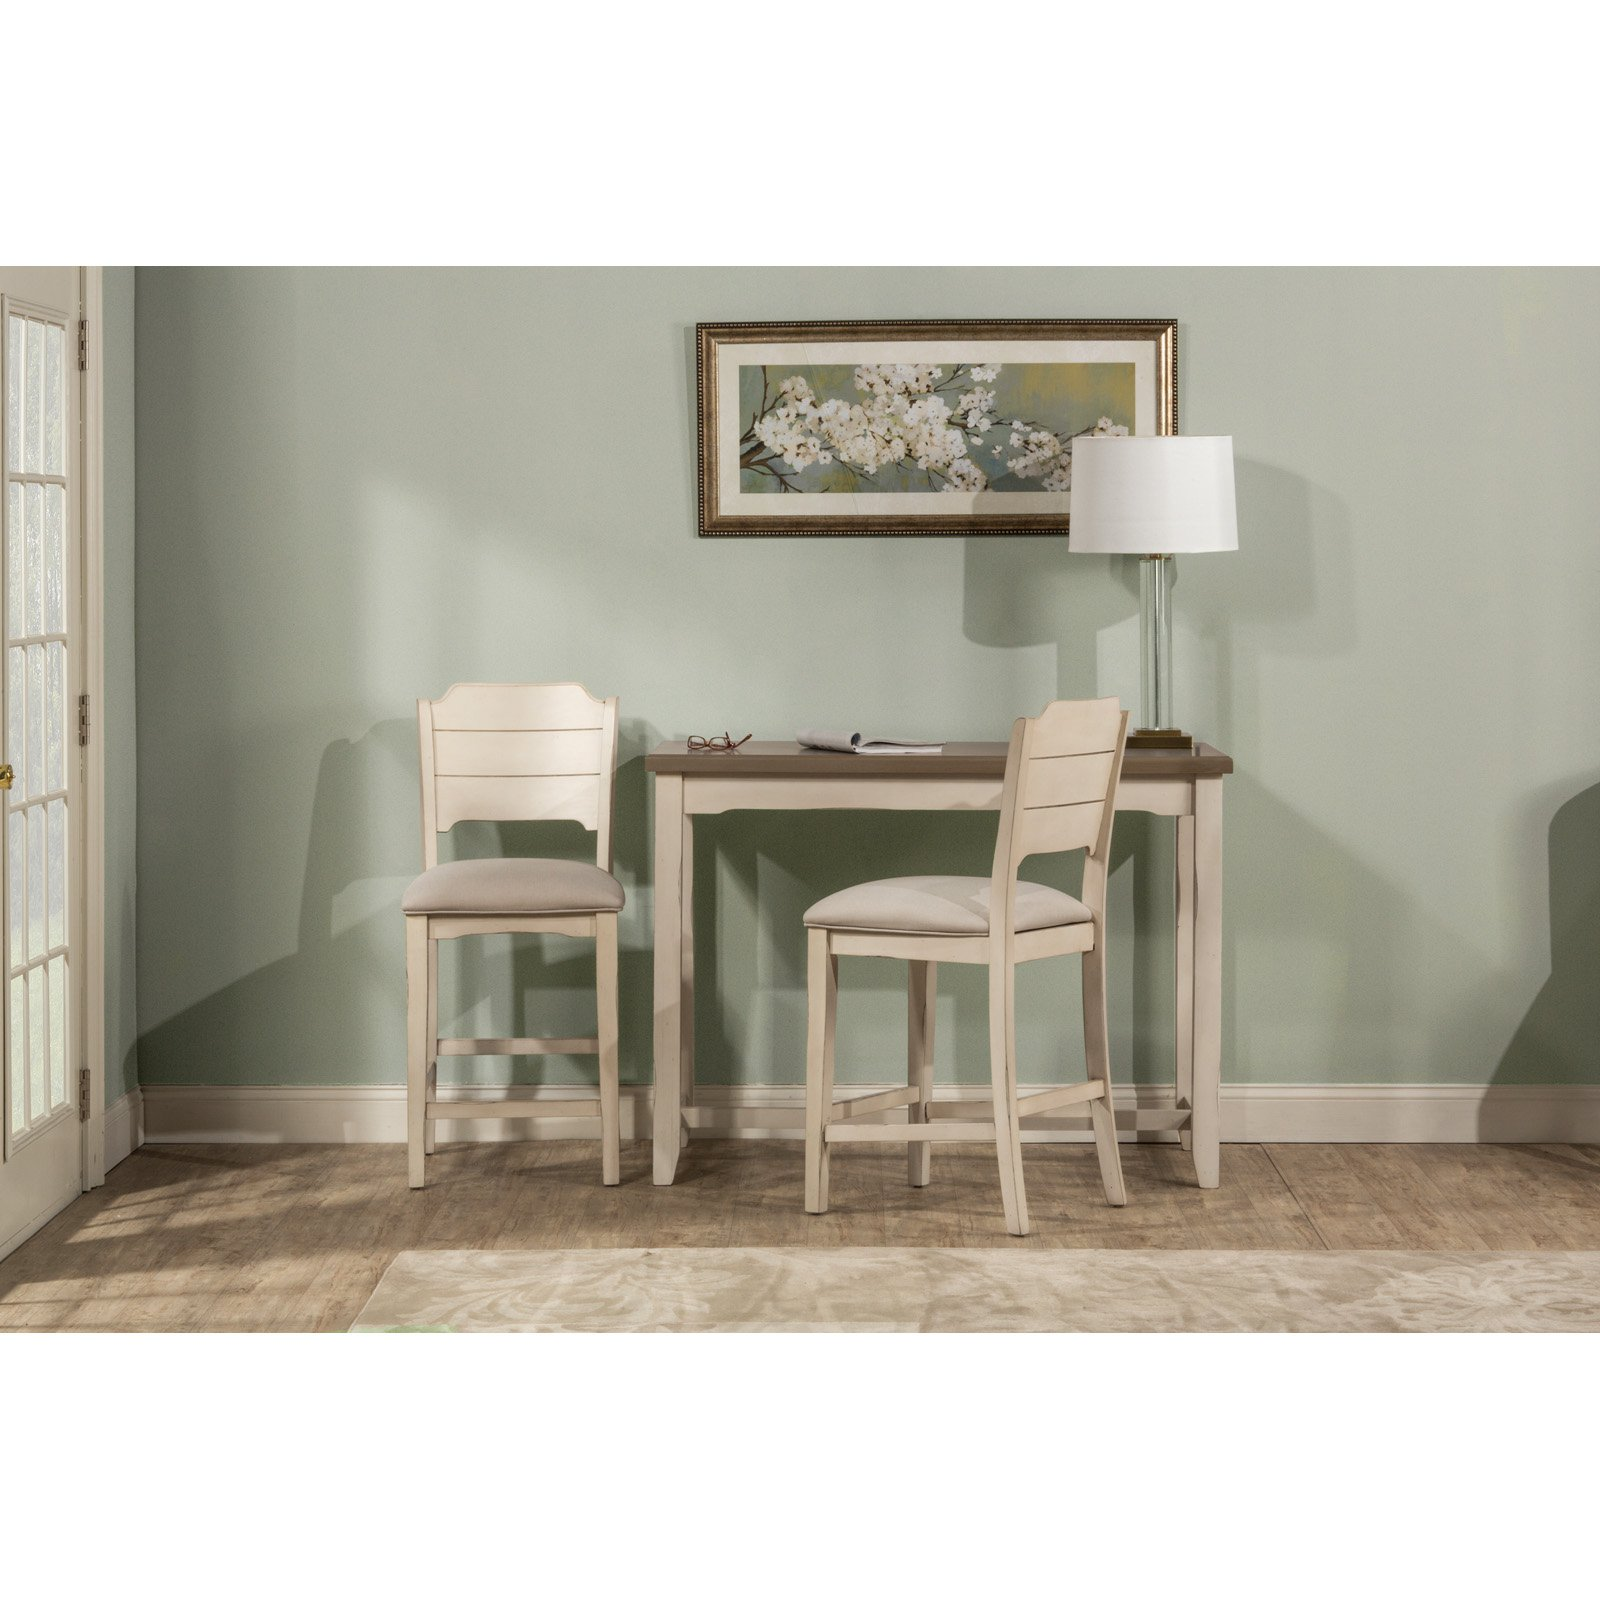 Hillsdale Furniture Clarion Three (3) Piece Counter Height Side Dining Set with Open Back Stools